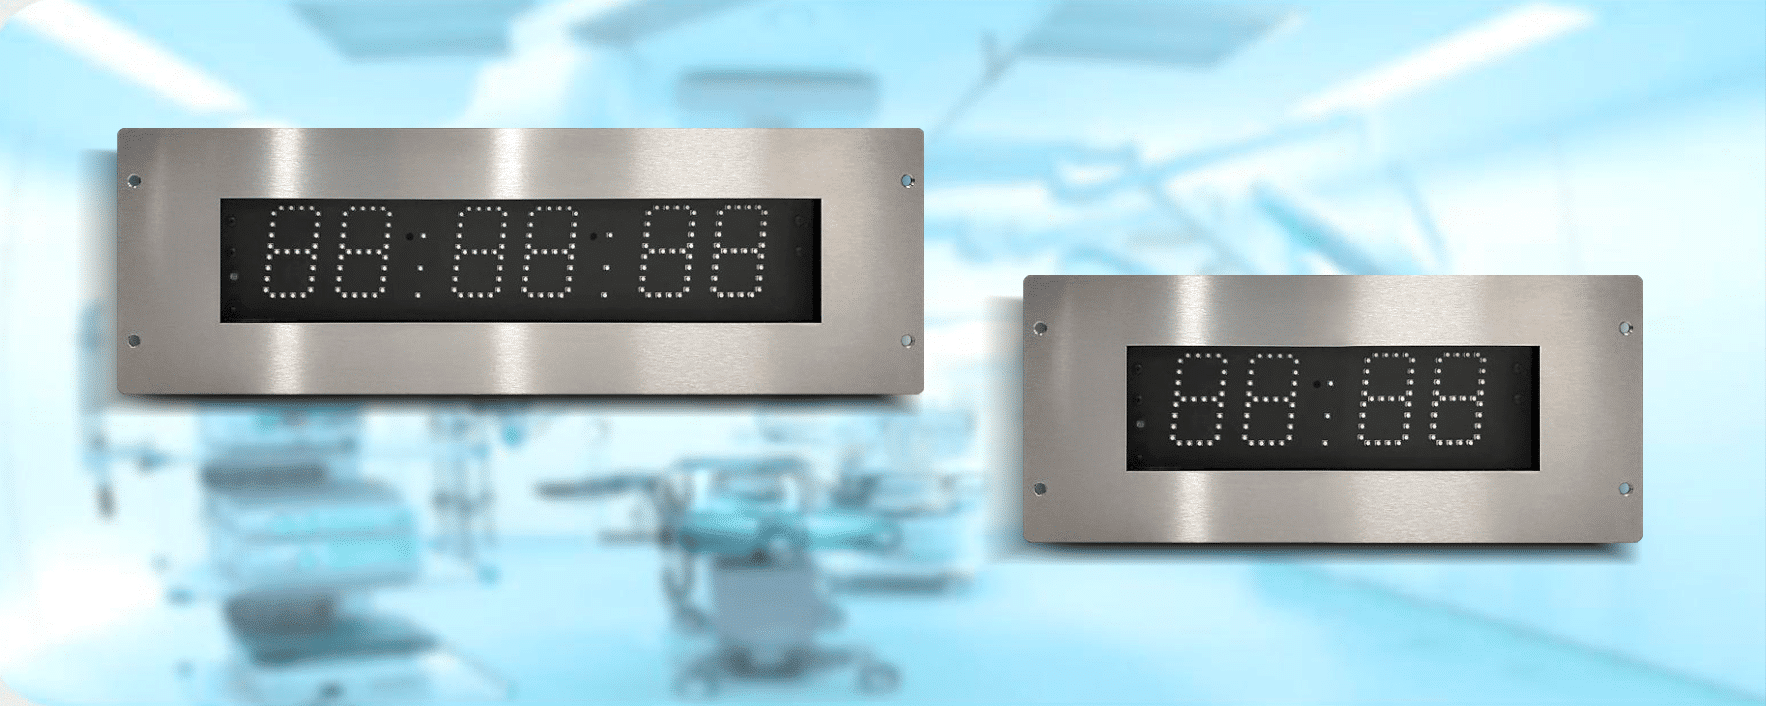 Flush Mount Clocks ZAM5-L PoE & ZBM5-L PoE for operating theatres, laboratories and other clean room environments